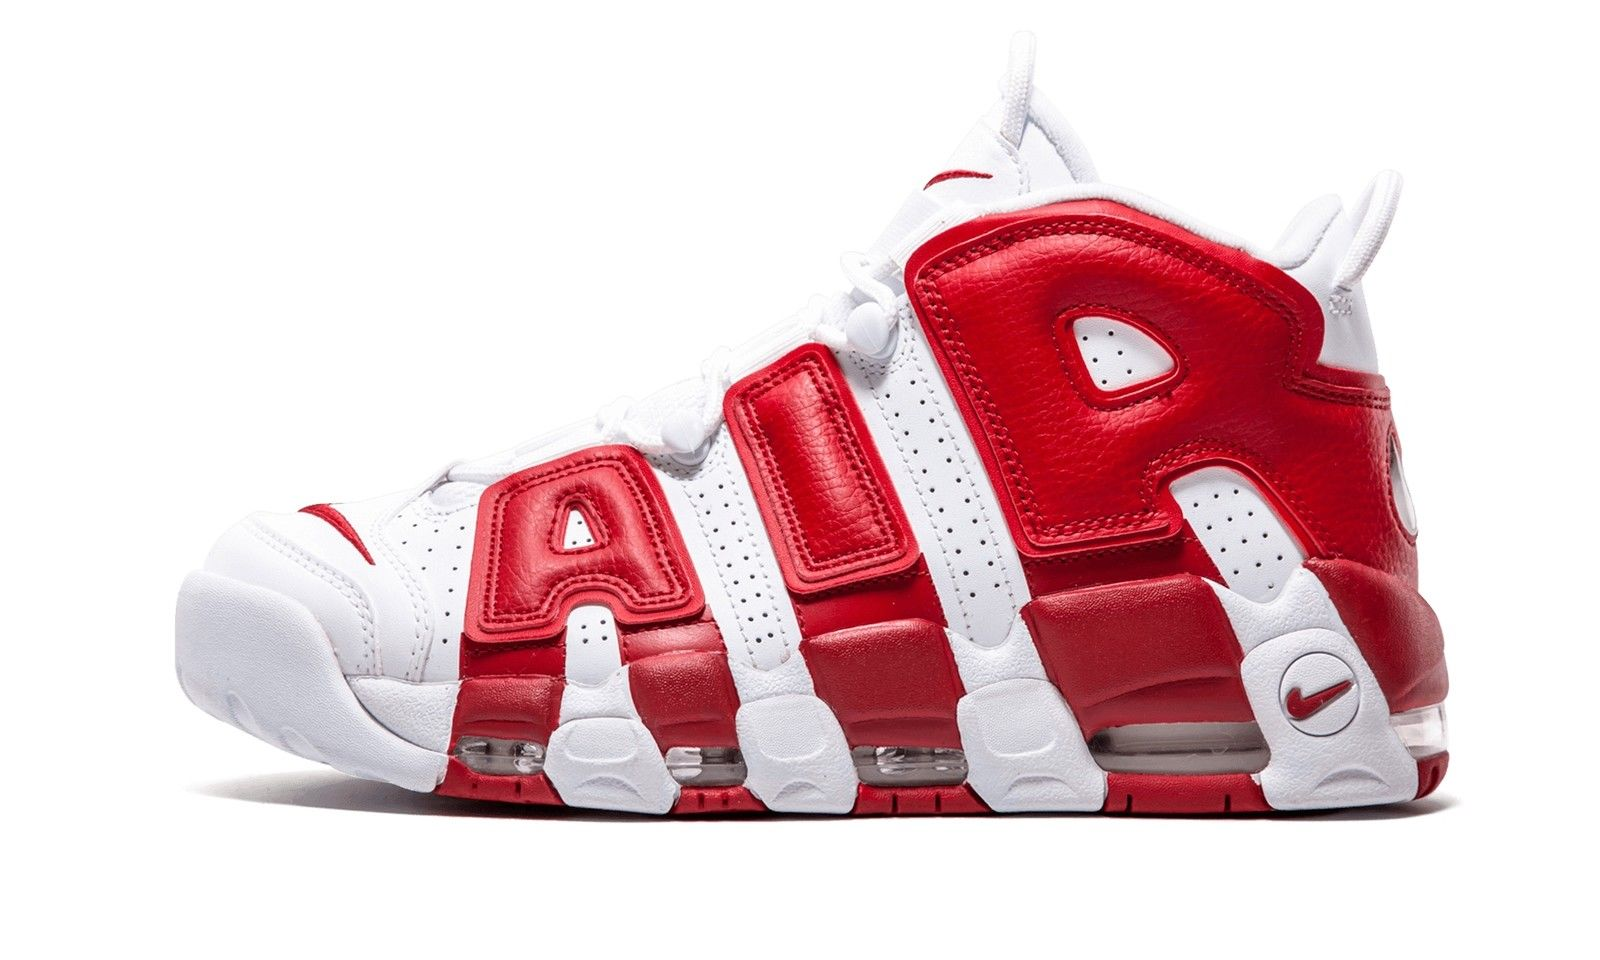 new product d6926 8580e BUTY damskie Nike Air More Uptempo